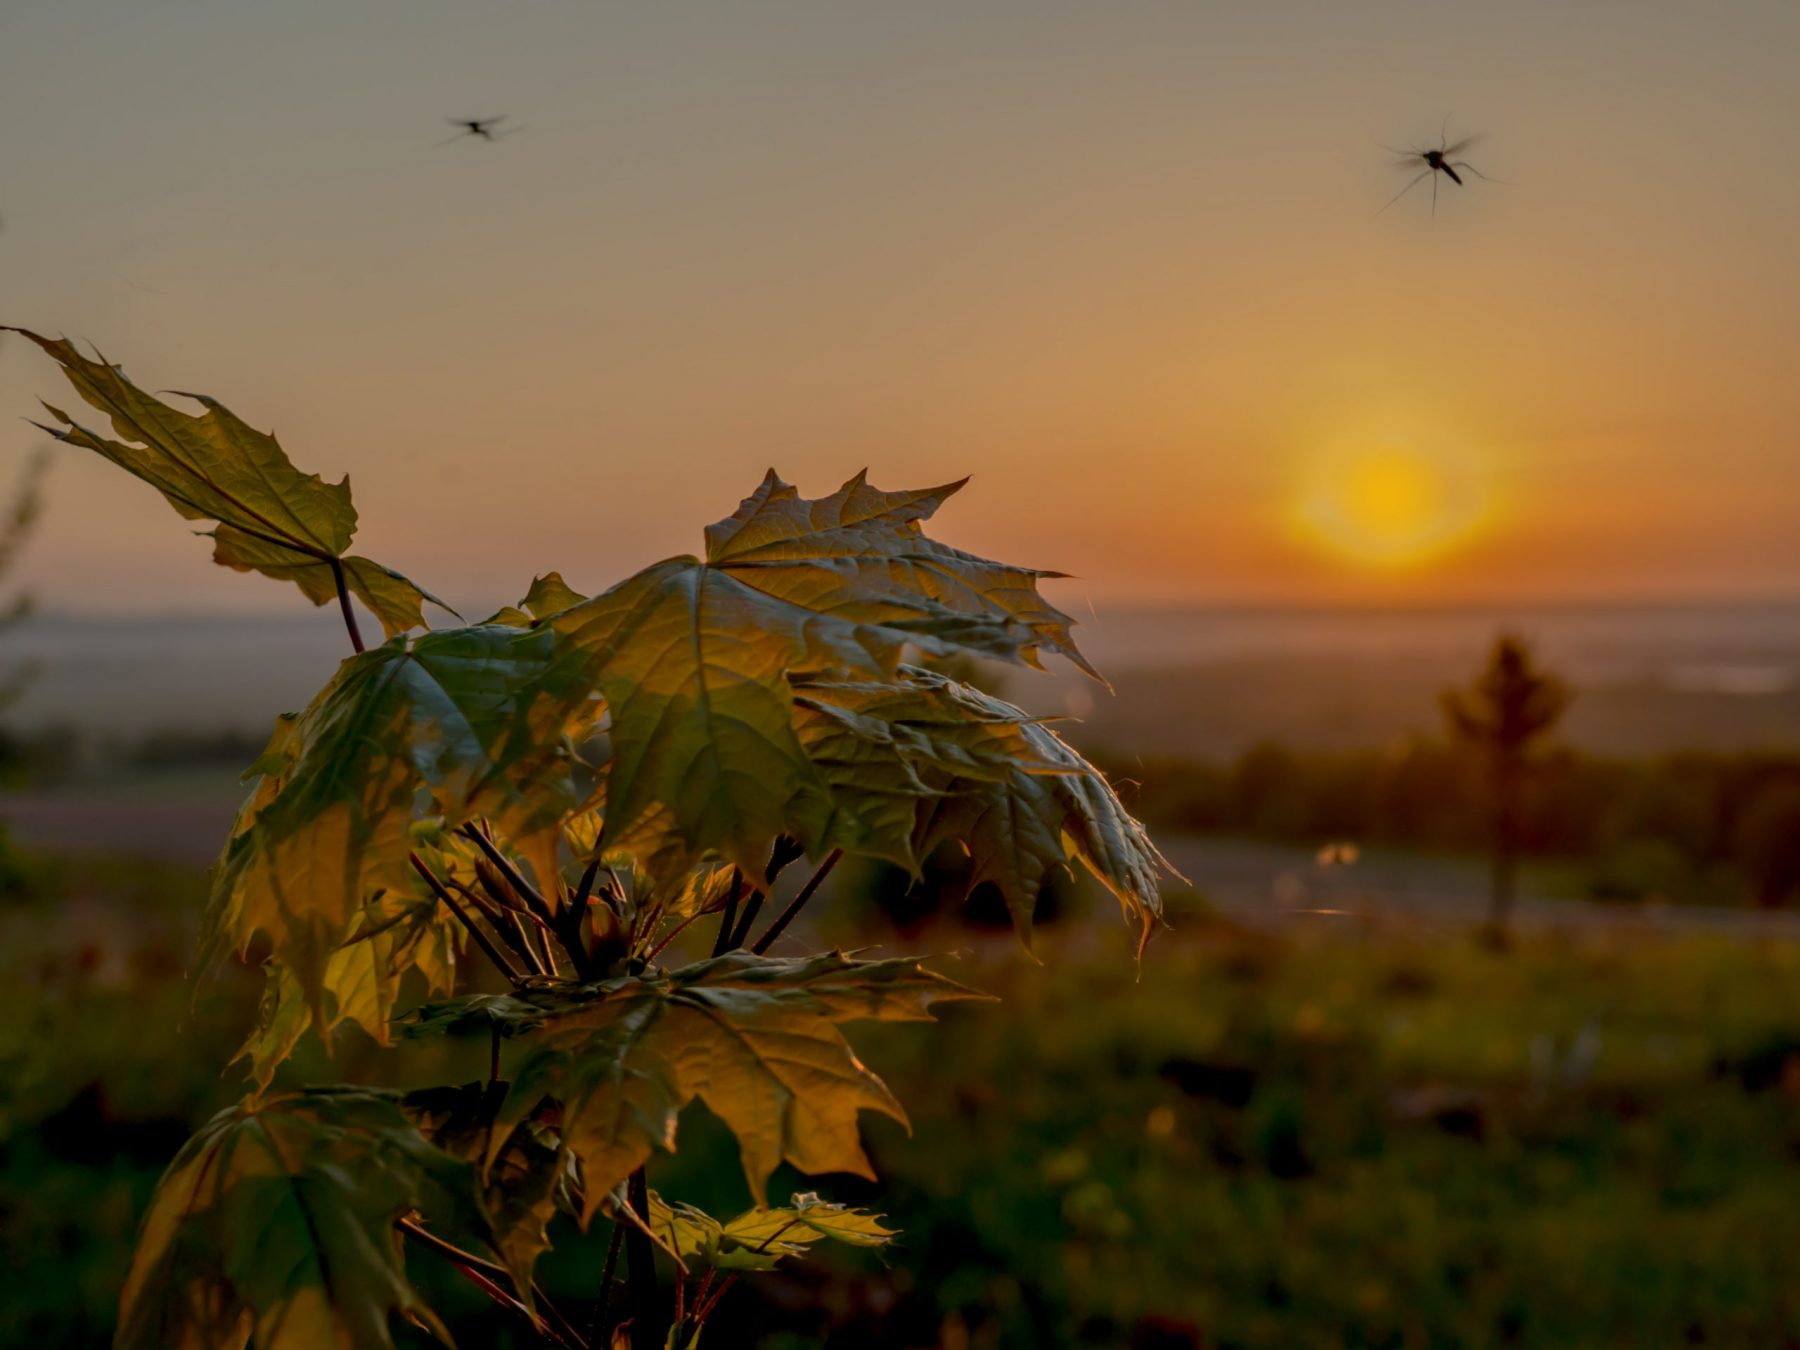 Mosquito flies over maple illuminated by the rising sun